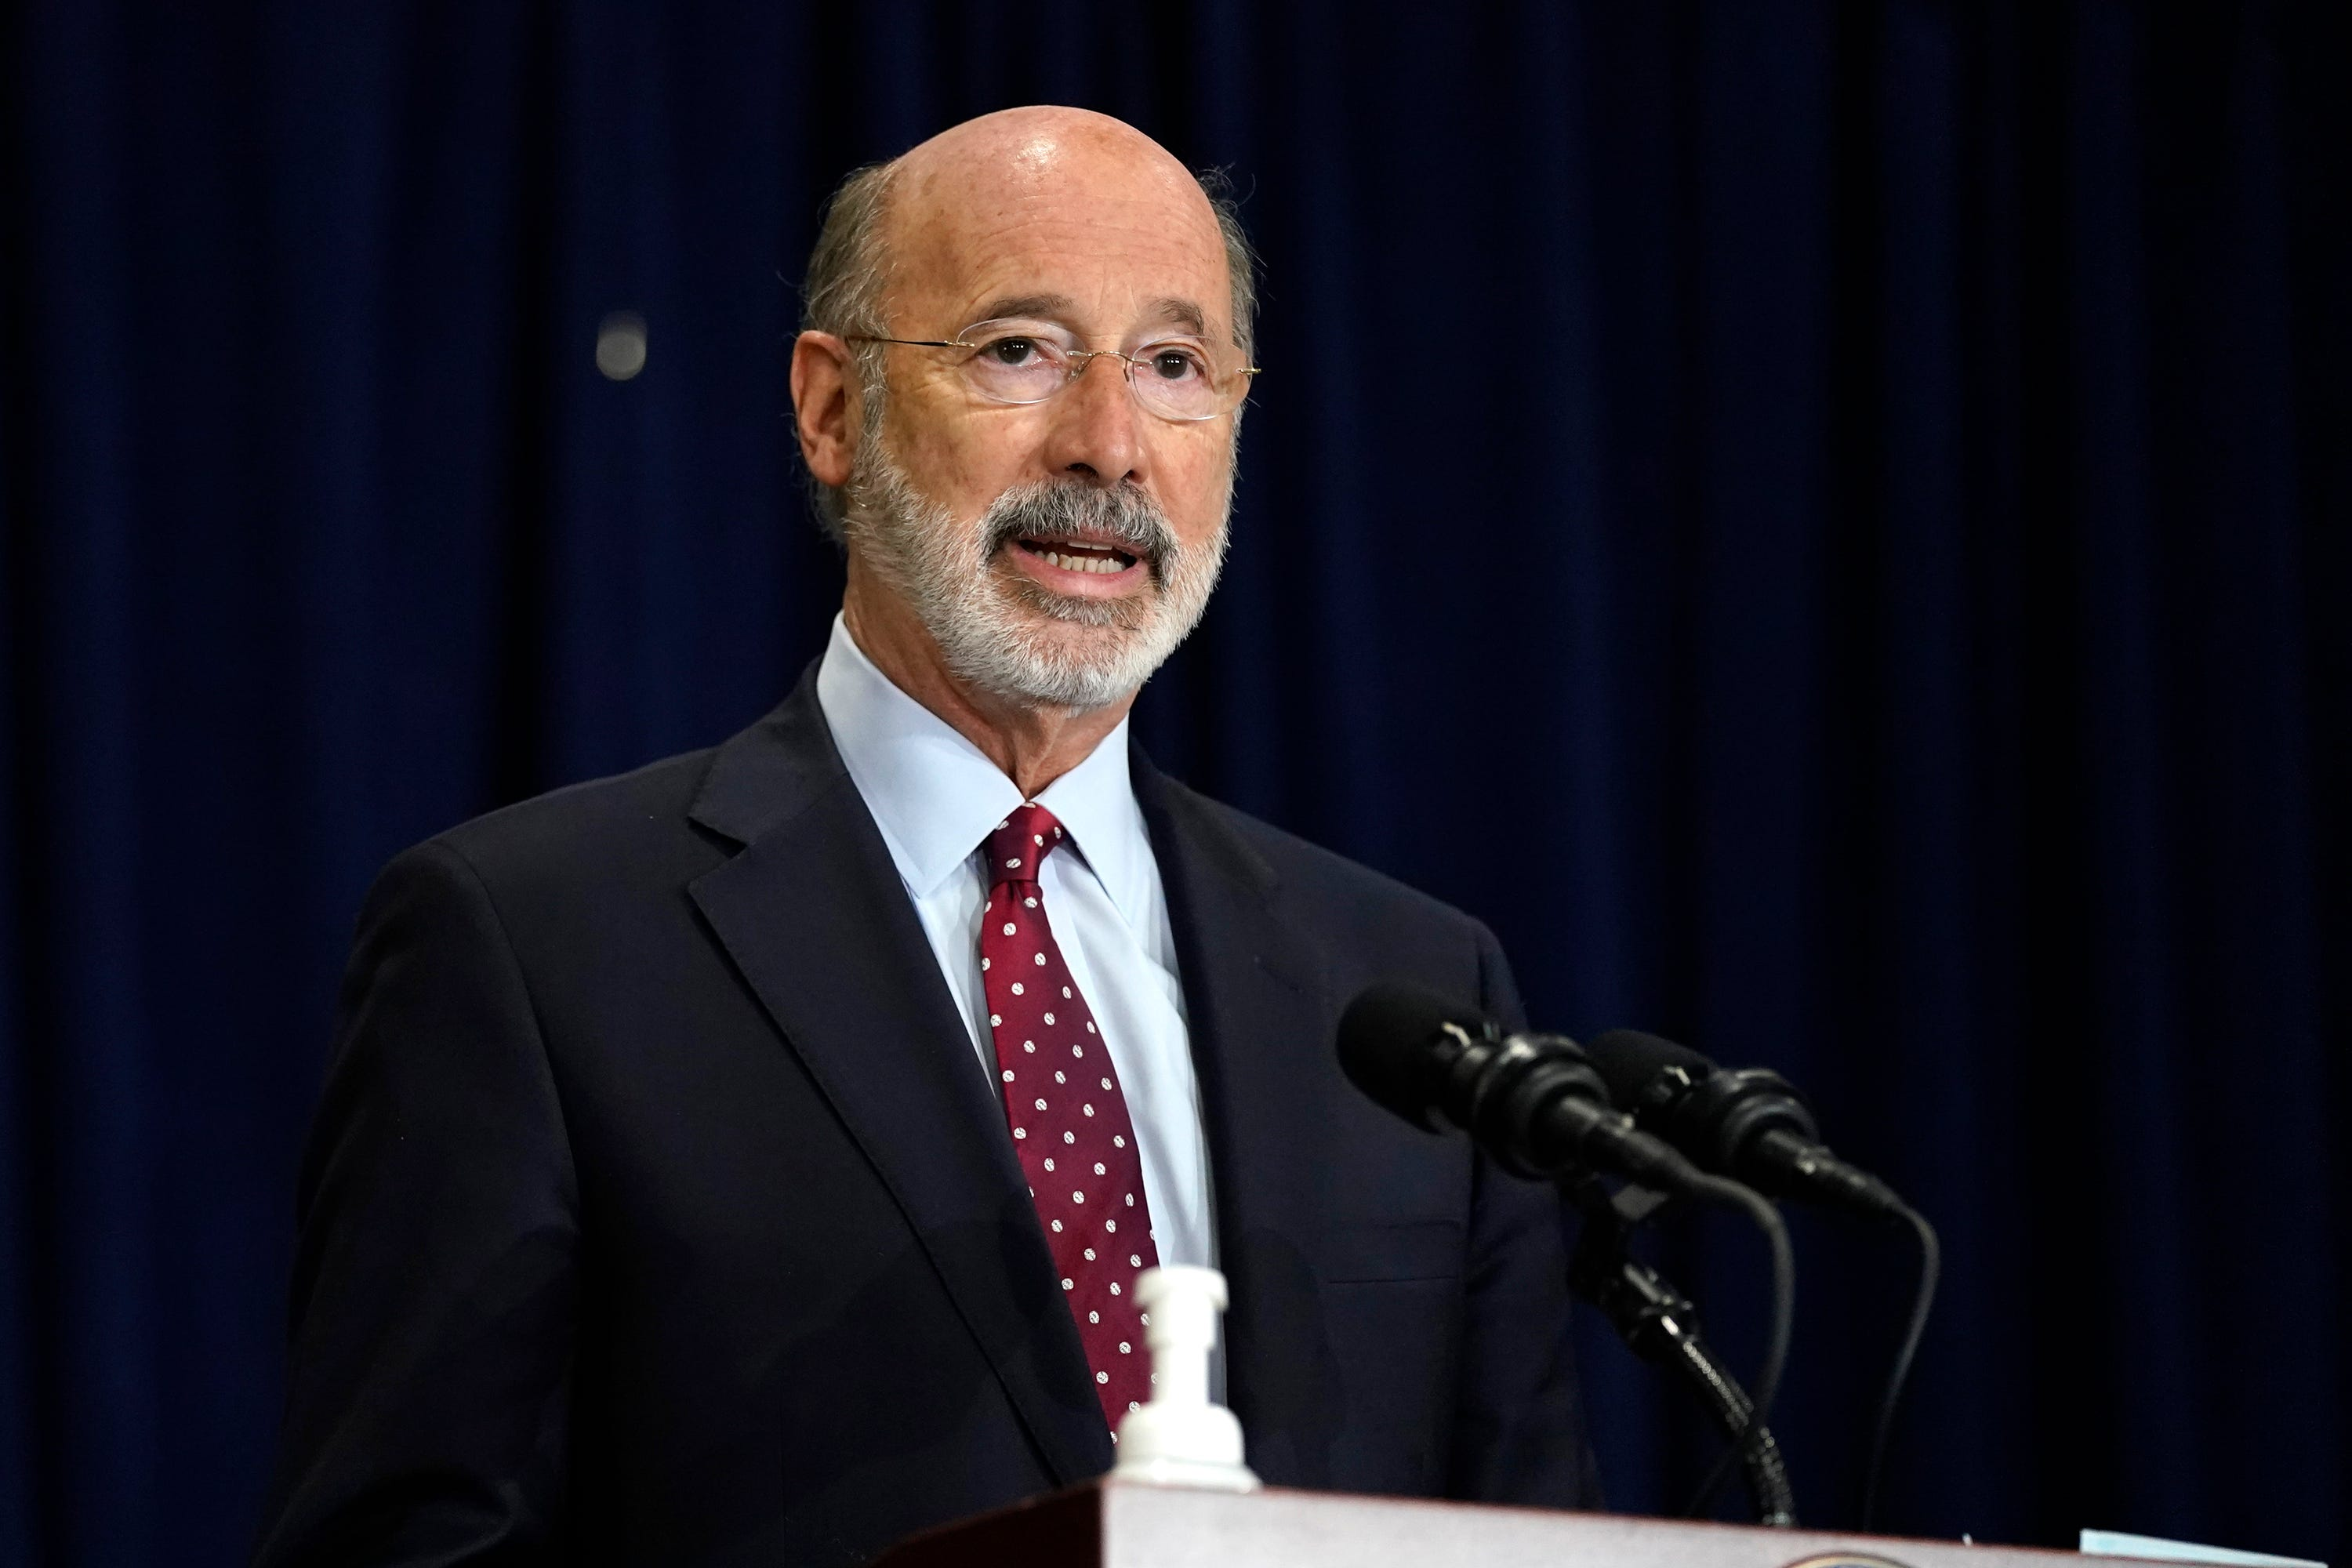 FILE - In this Nov. 4, 2020, file photo, Pennsylvania Gov. Tom Wolf speaks during a news conference in Harrisburg, Pa., regarding the counting of ballots in the 2020 general election. Facing a deep, pandemic-inflicted budget deficit, Gov. Wolf will ask lawmakers for billions of dollars funded by higher taxes on Pennsylvania's huge natural gas industry for workforce development and employment assistance to help the state recover.